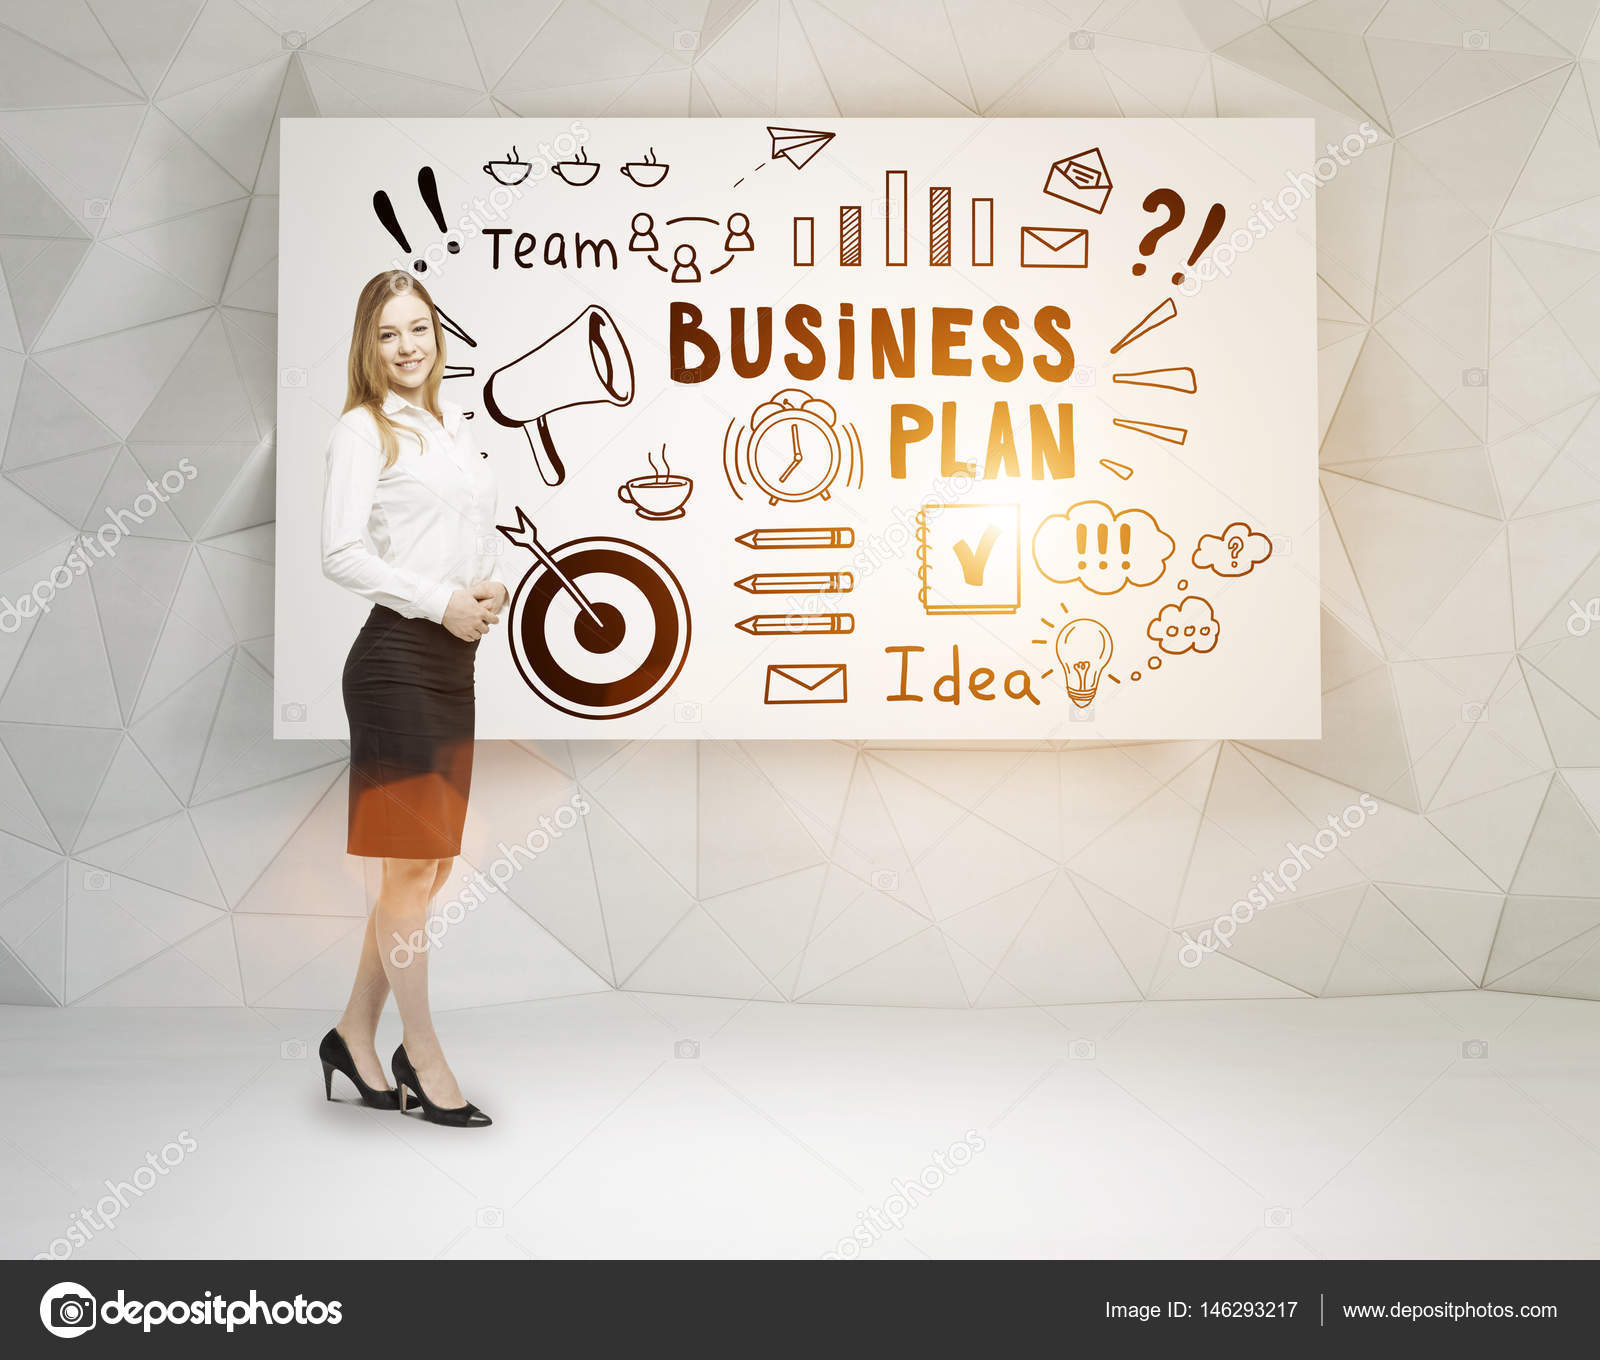 business plan idea Starting a laundry business - sample business plan template 1 consider your financial bonus service-: another idea that you can introduce in your laundry business is to offer bonus service.